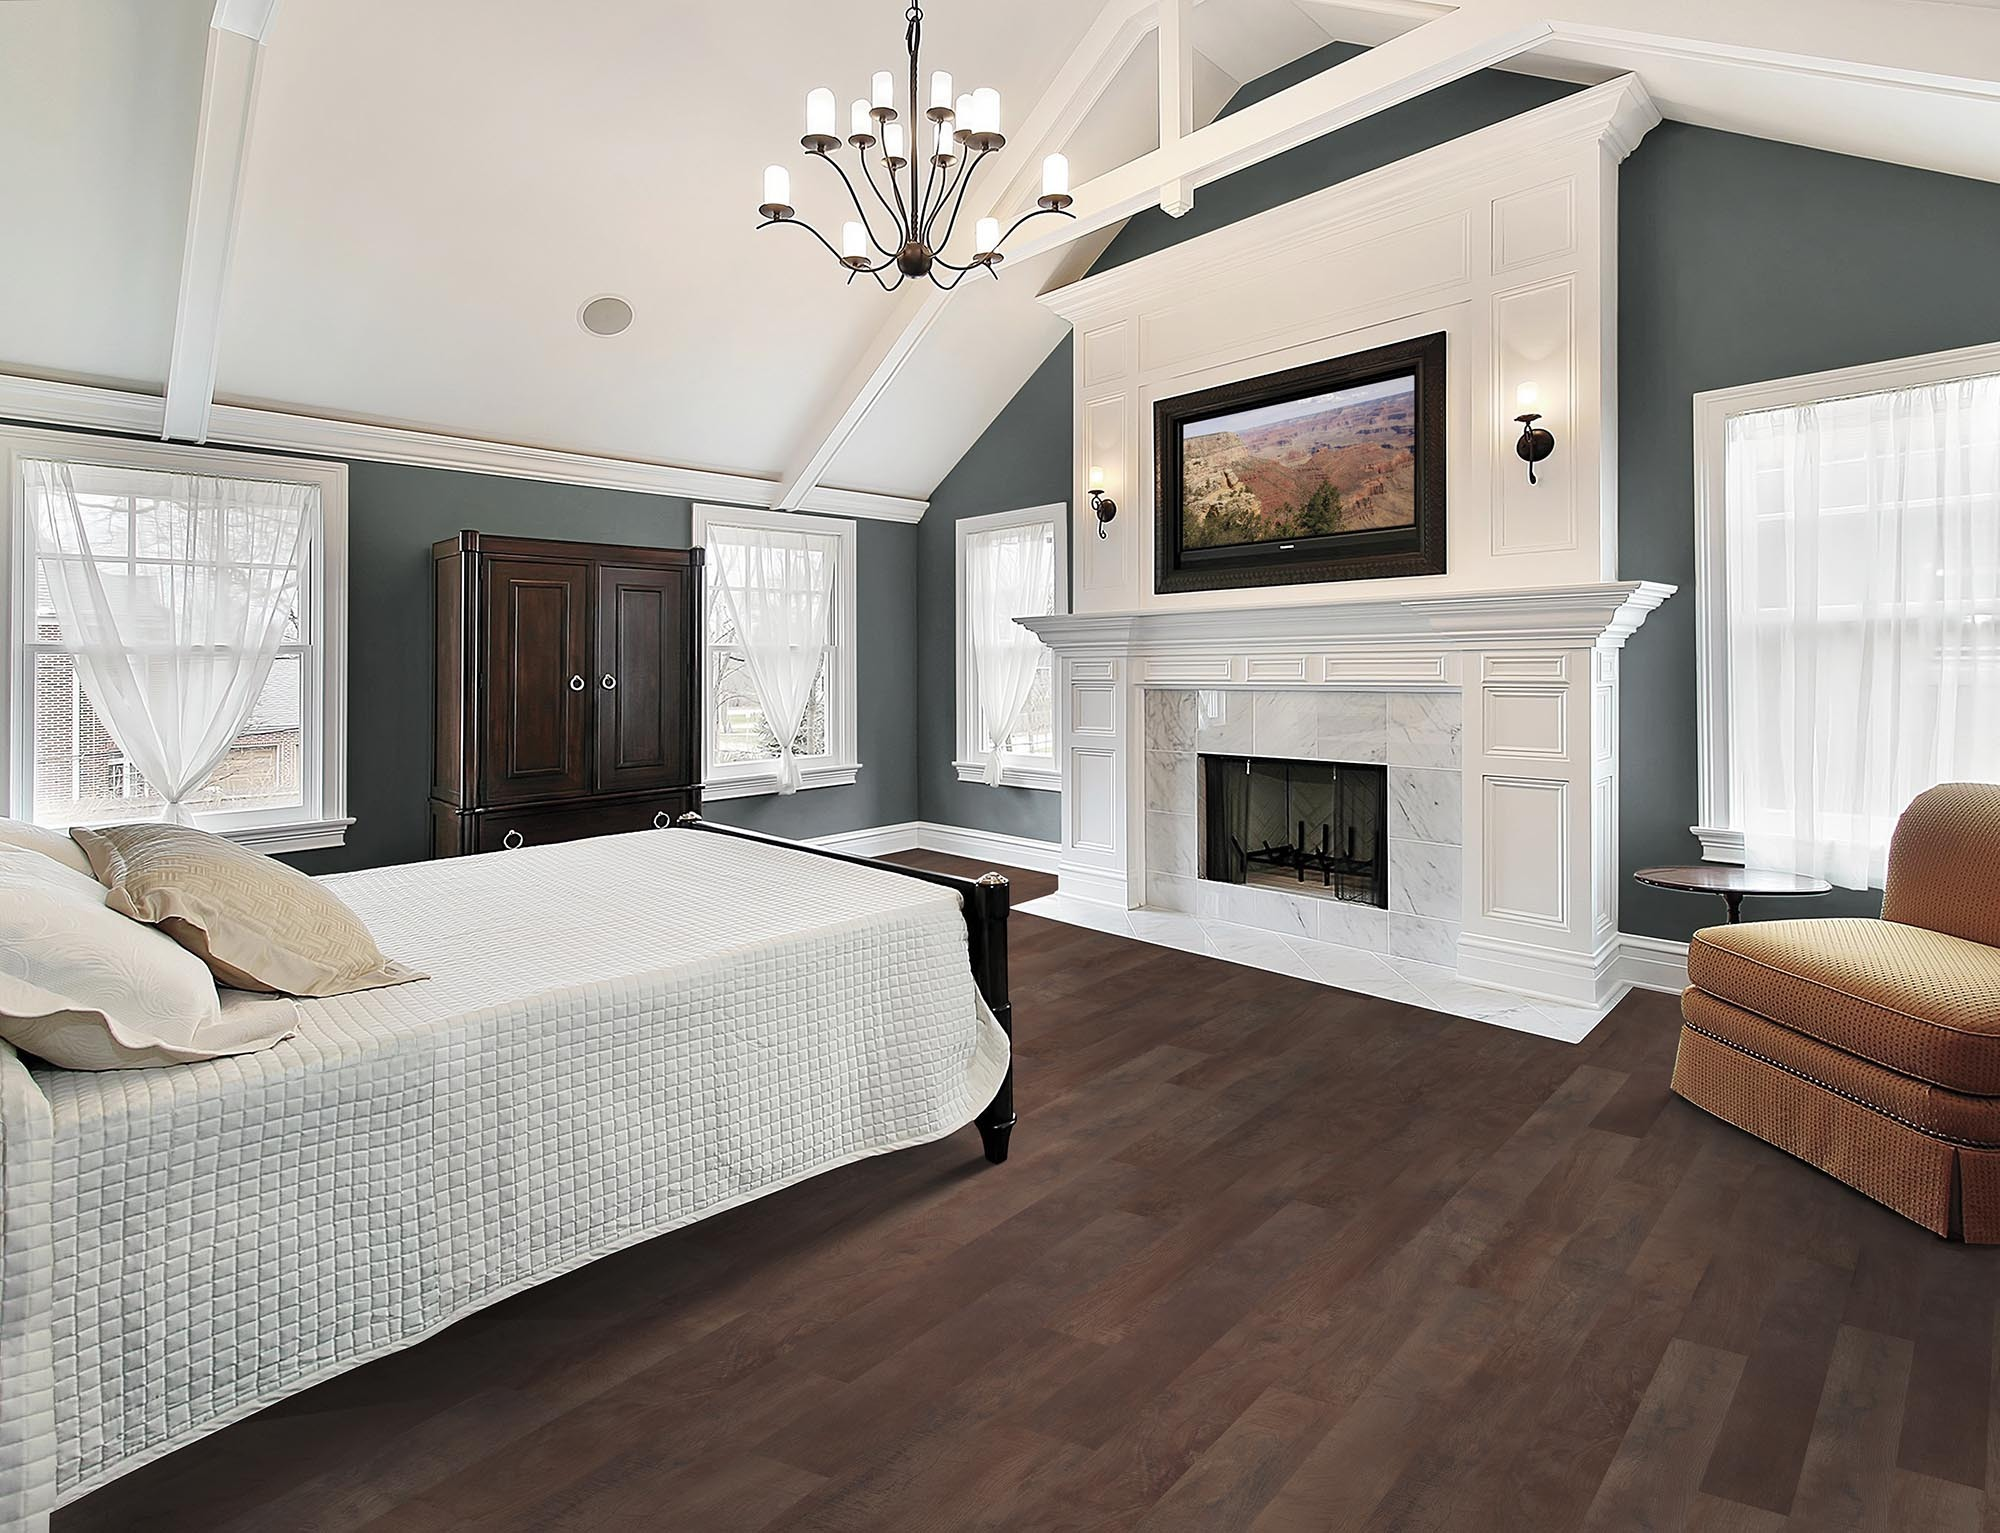 Professionally installed flooring in a Jacksonville, FL home